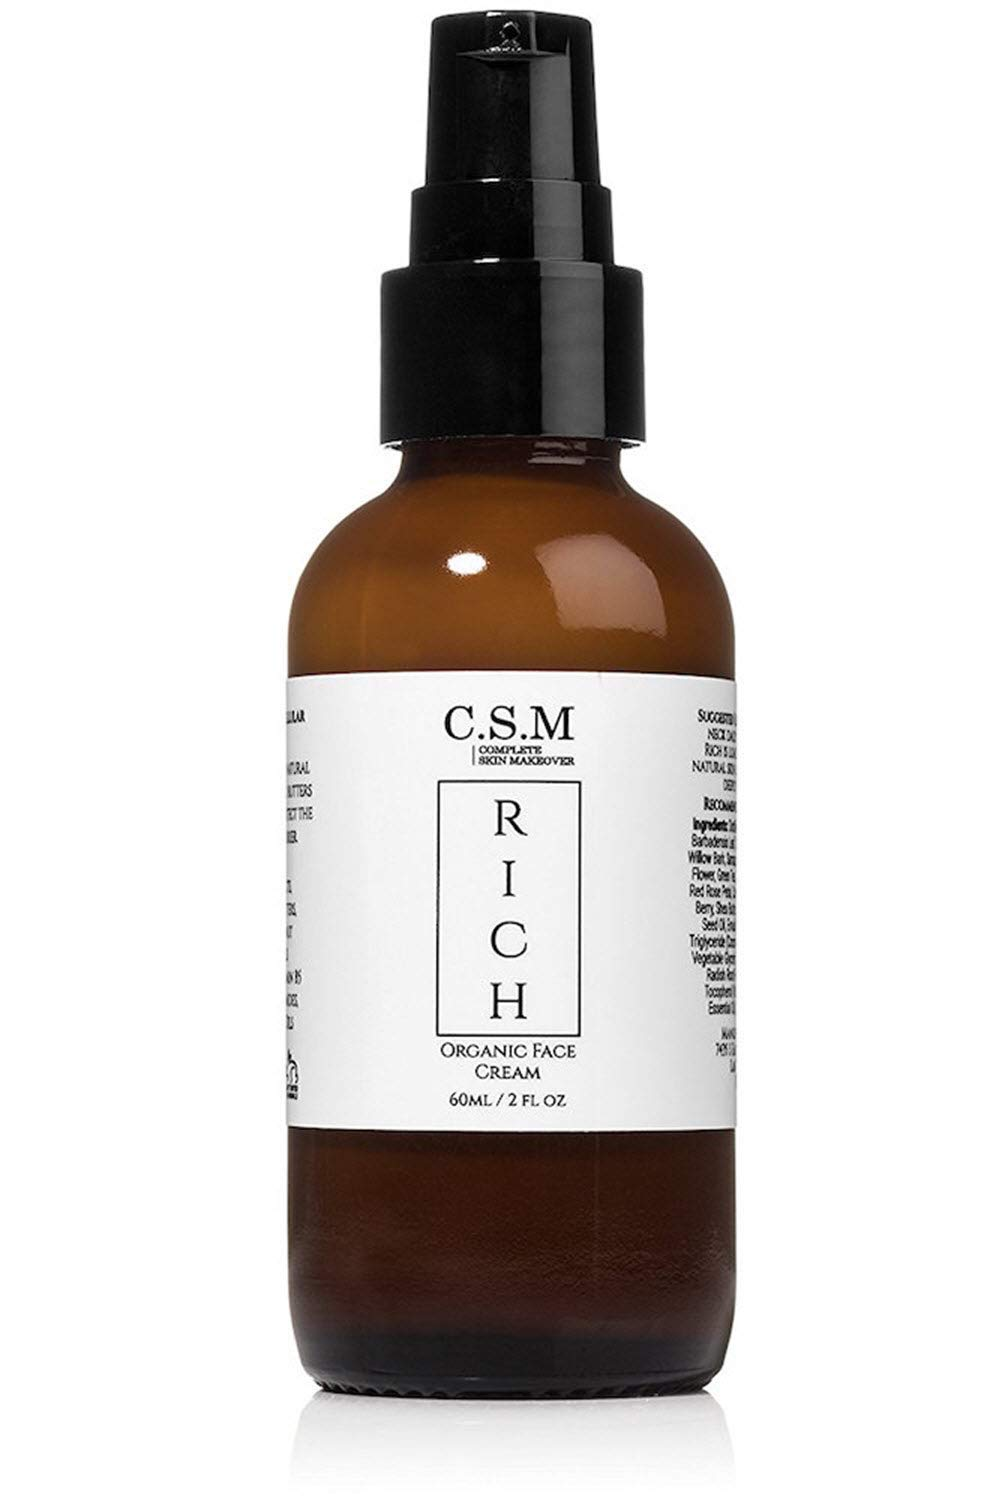 CSM RICH Organic Moisturizing Face and Eye Cream with Vitamin C, B5, Ceramides, Aloe, Chamomile, Comfrey, Lavender, Calendula, Anti-Aging Natural Skin Care Lotion, Under Makeup, Day and Night Cream